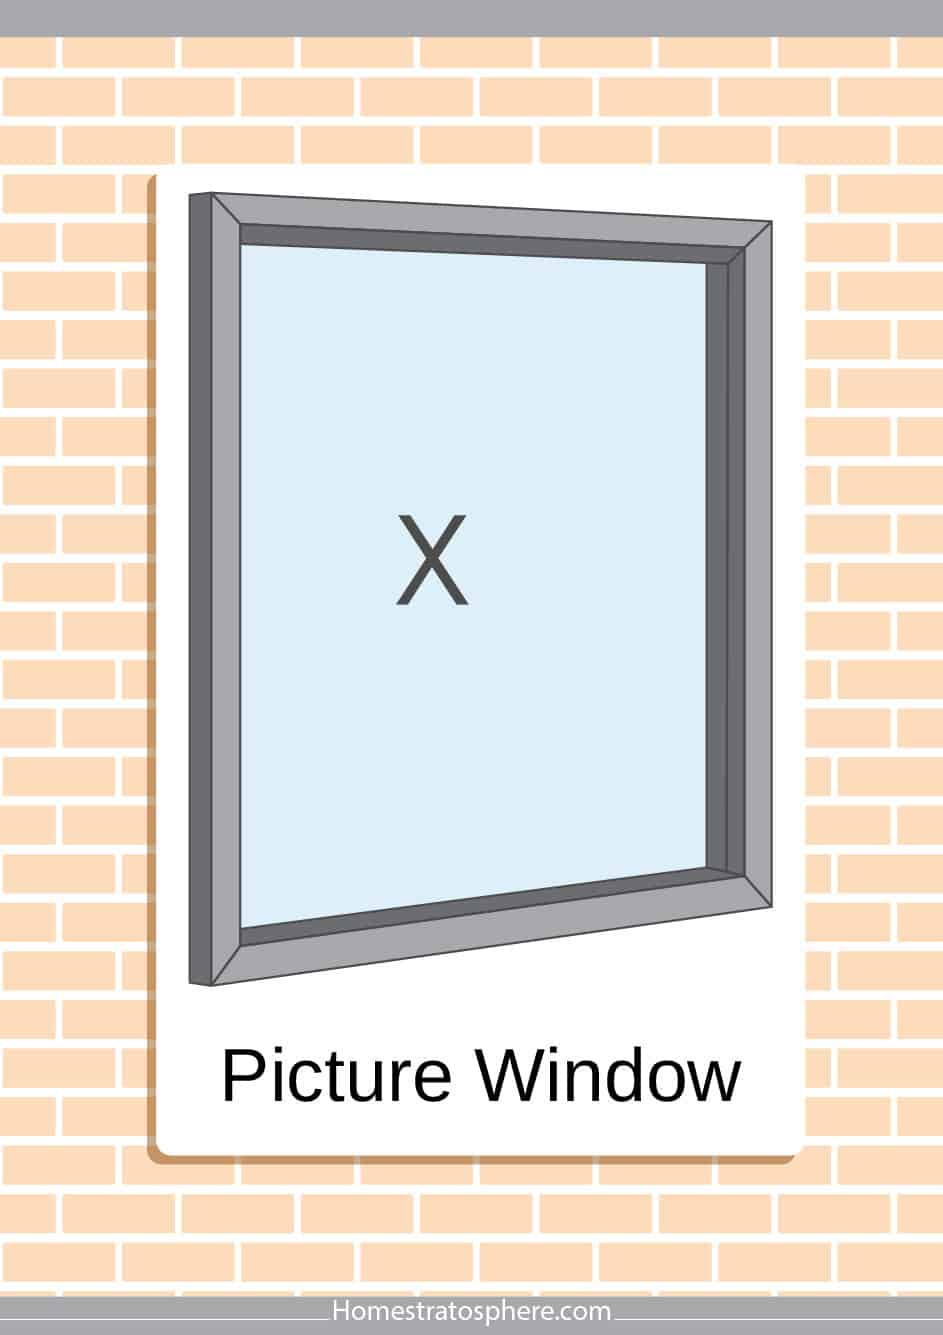 Picture window style